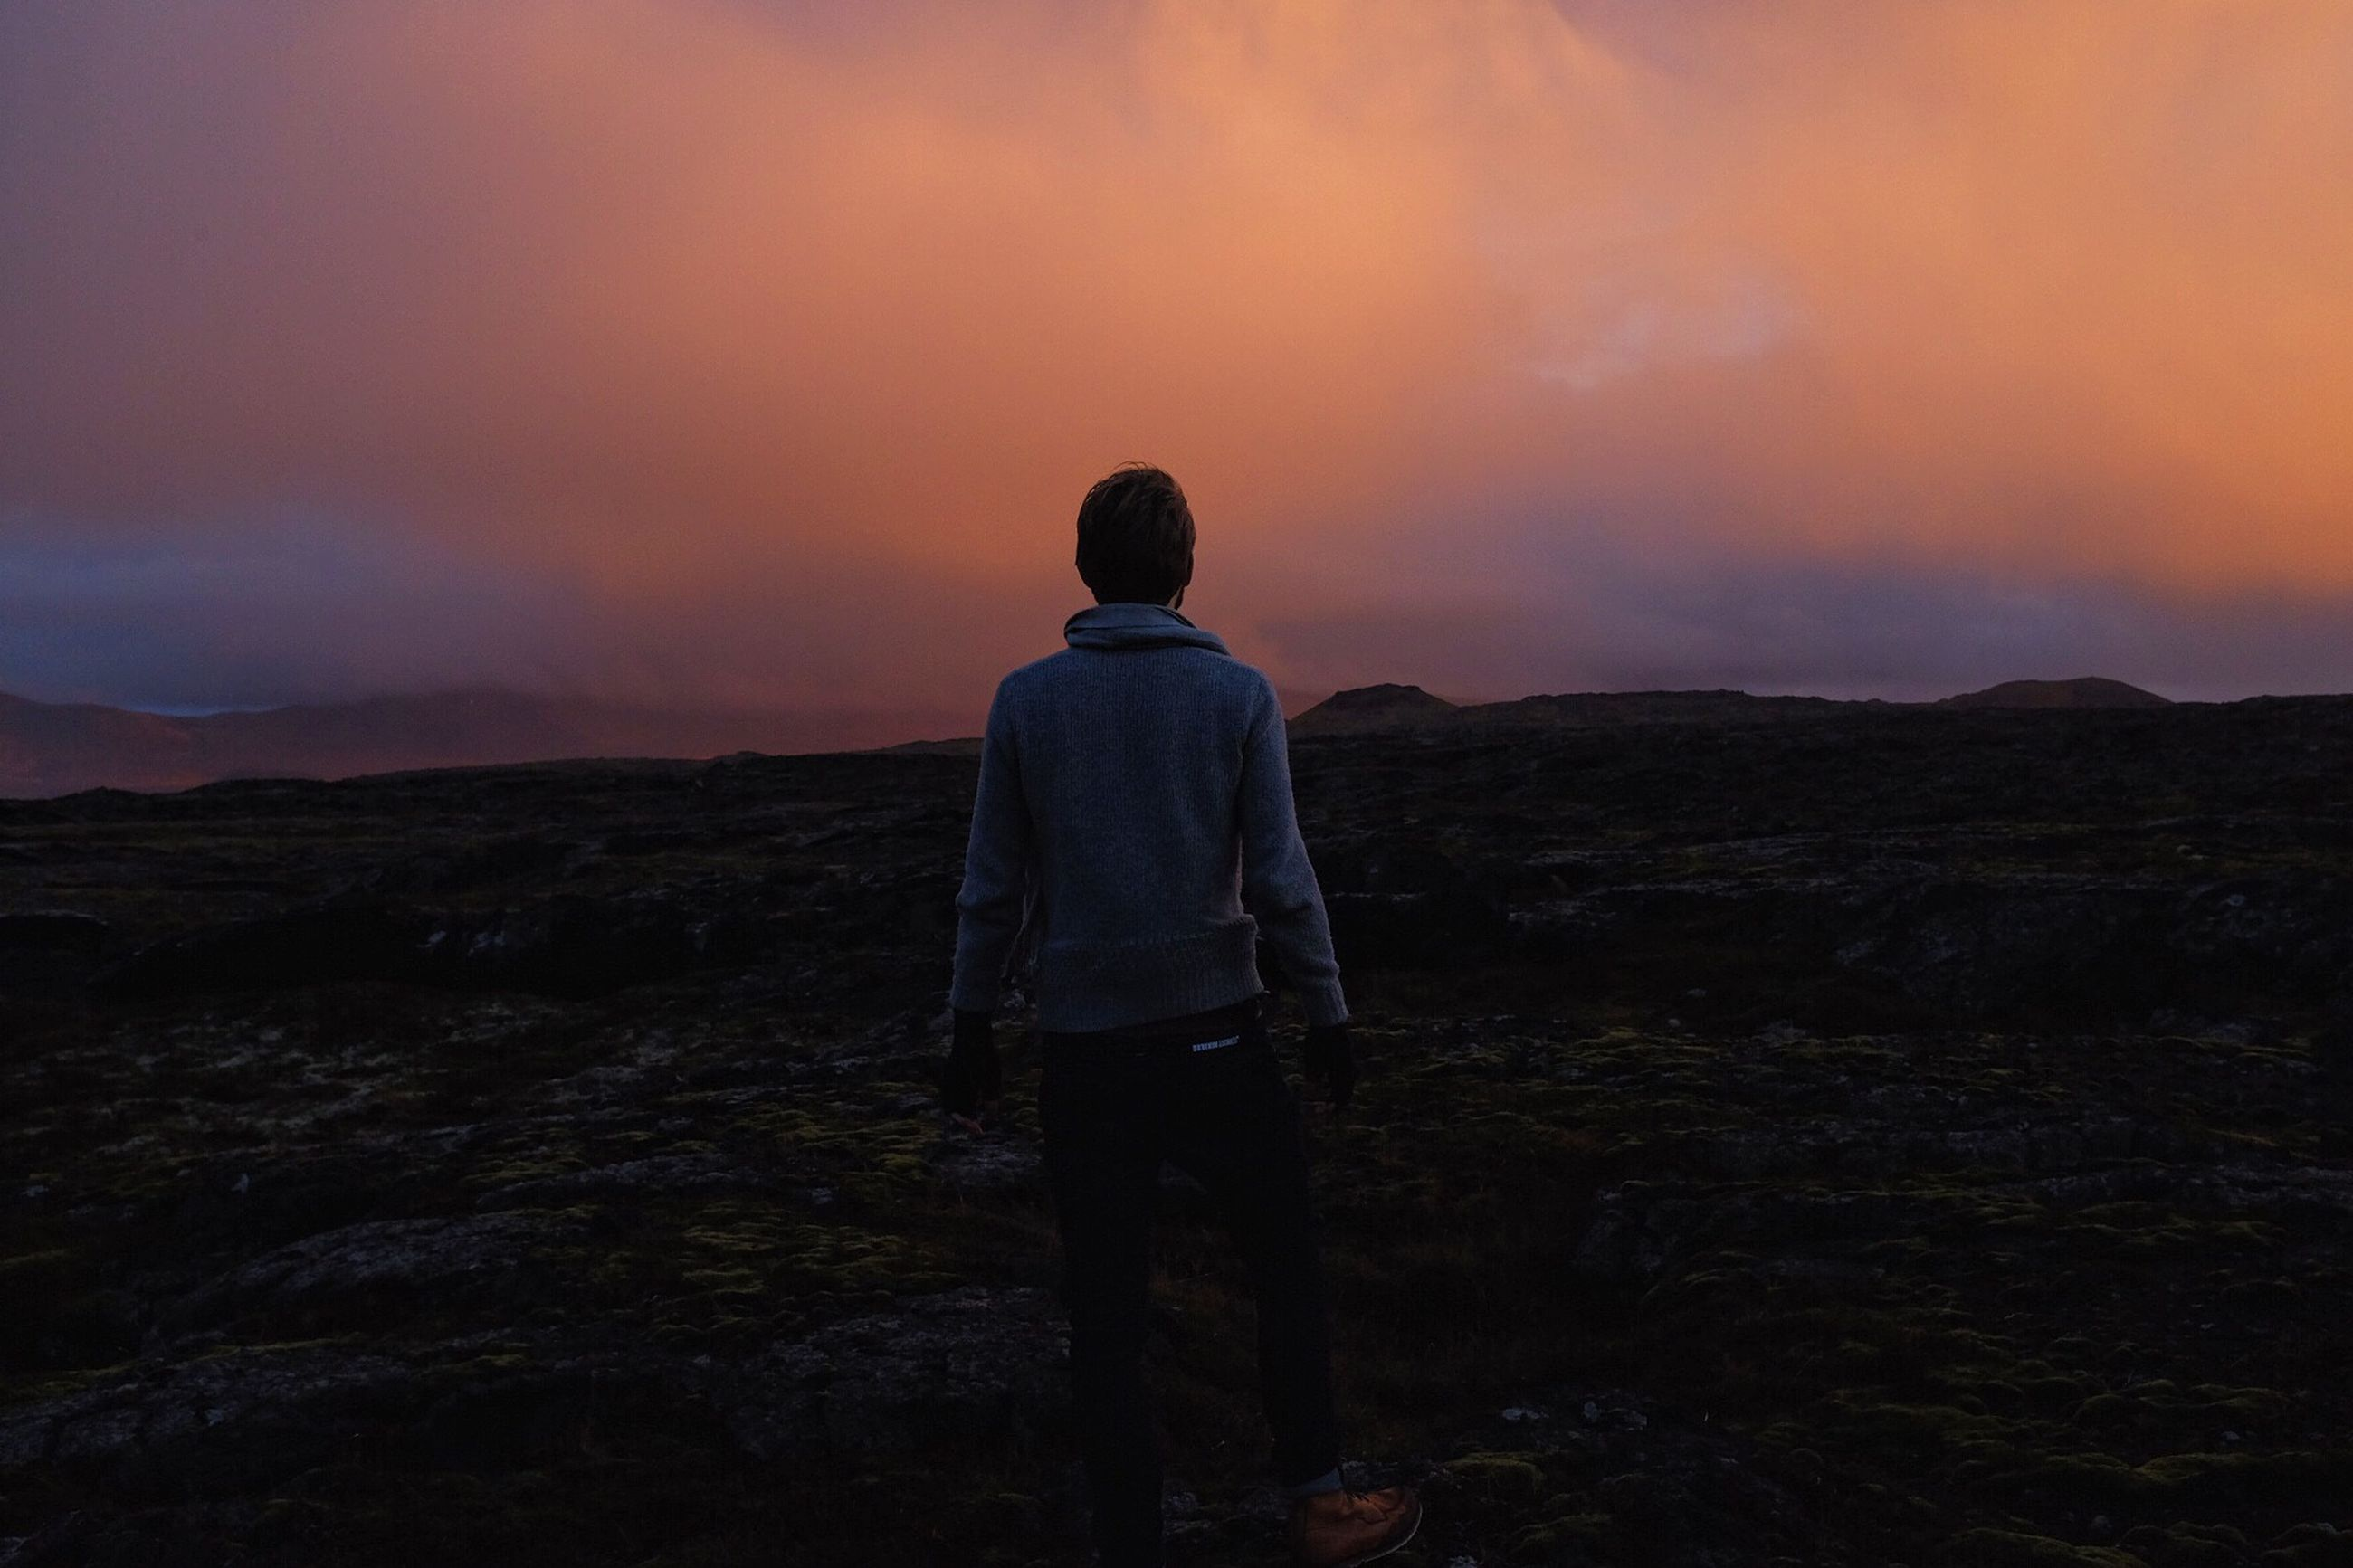 sunset, mountain, tranquil scene, landscape, sky, rear view, tranquility, scenics, standing, beauty in nature, lifestyles, leisure activity, nature, men, cloud - sky, full length, mountain range, orange color